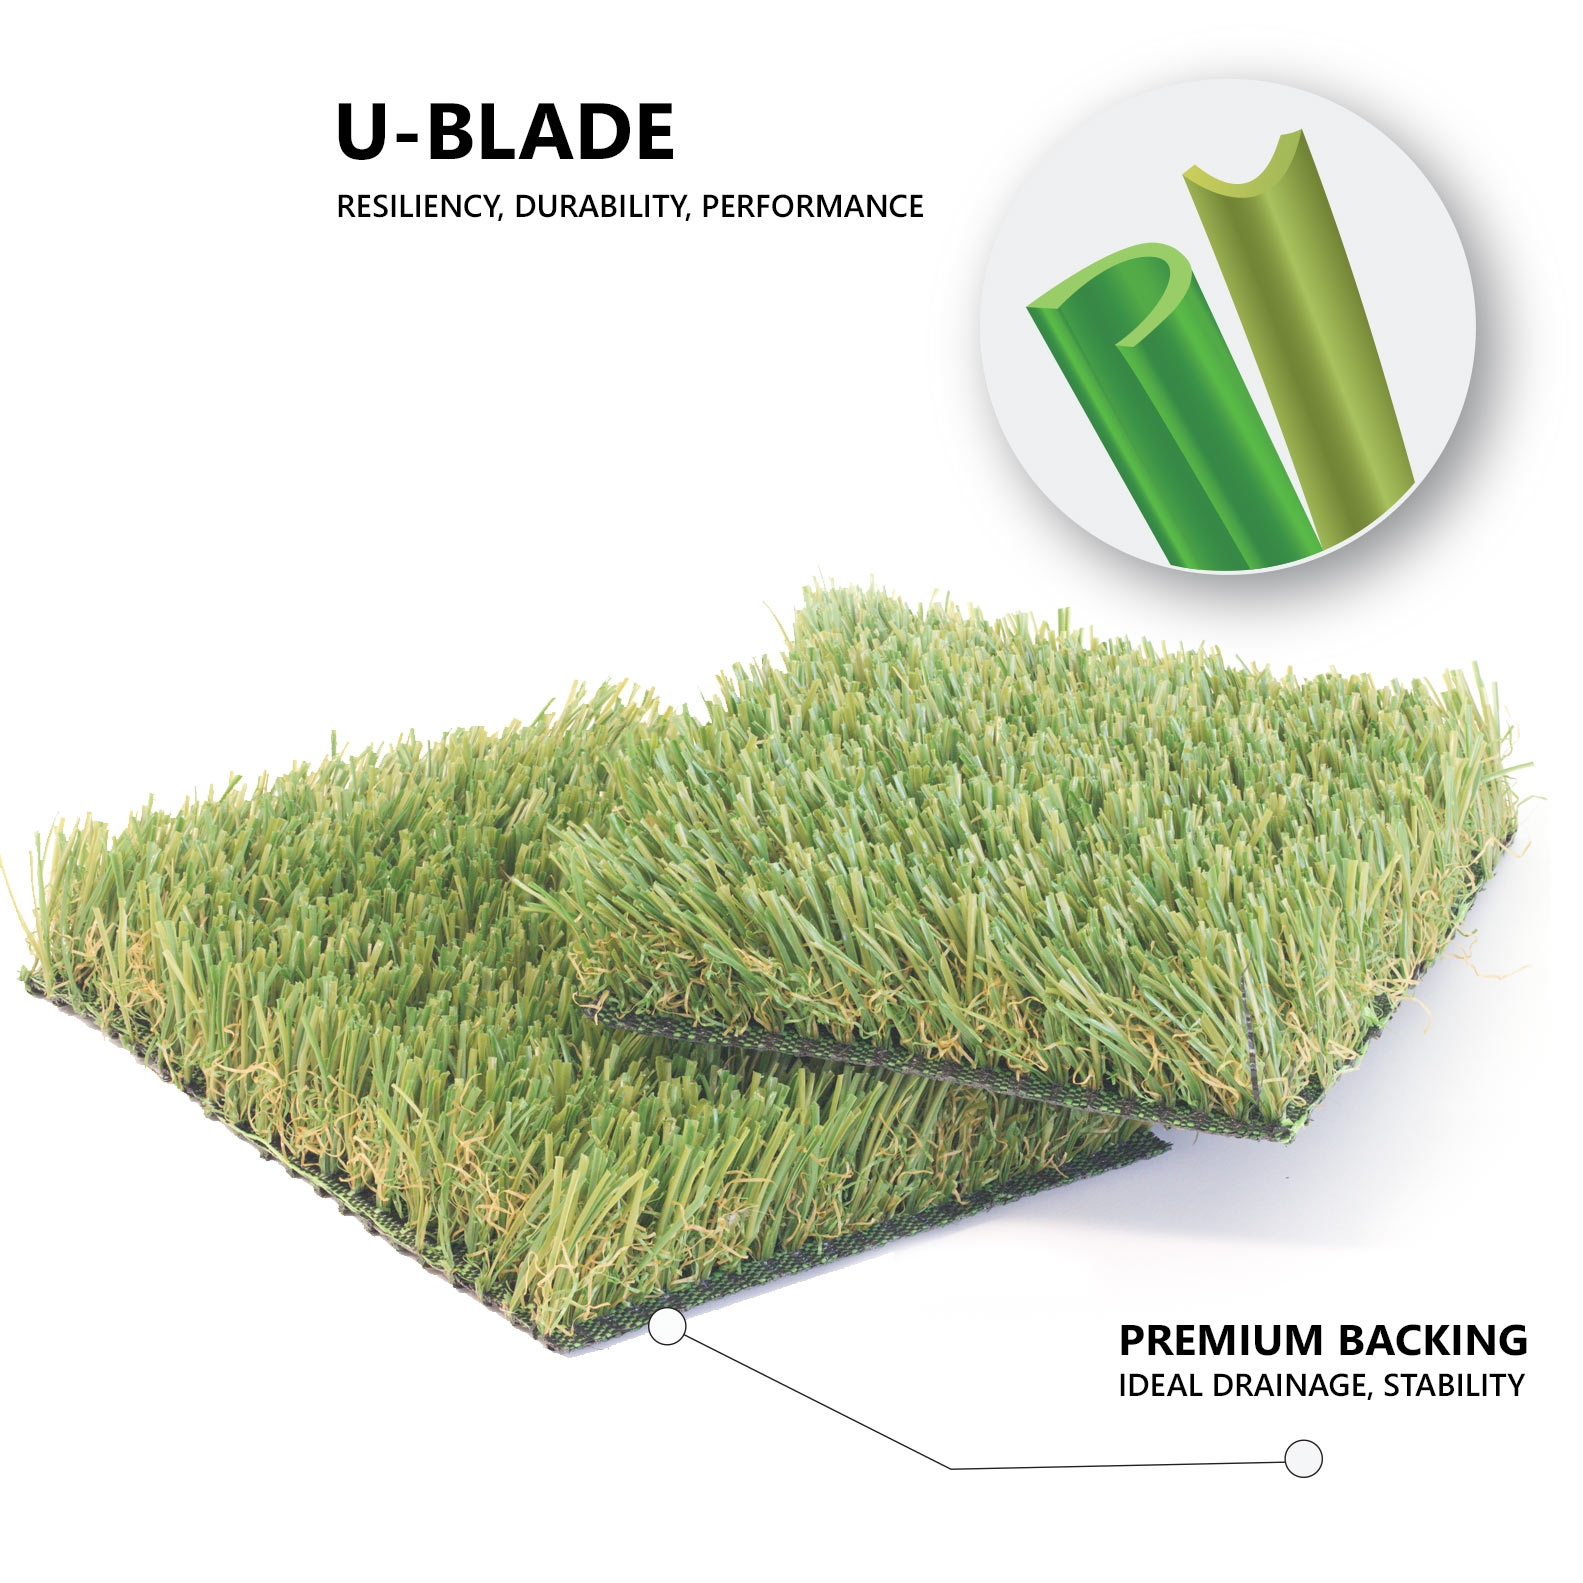 Pet Artificial Turf U-Blade shape, Premium backing, U Blade, Free Samples. Pet Turf.